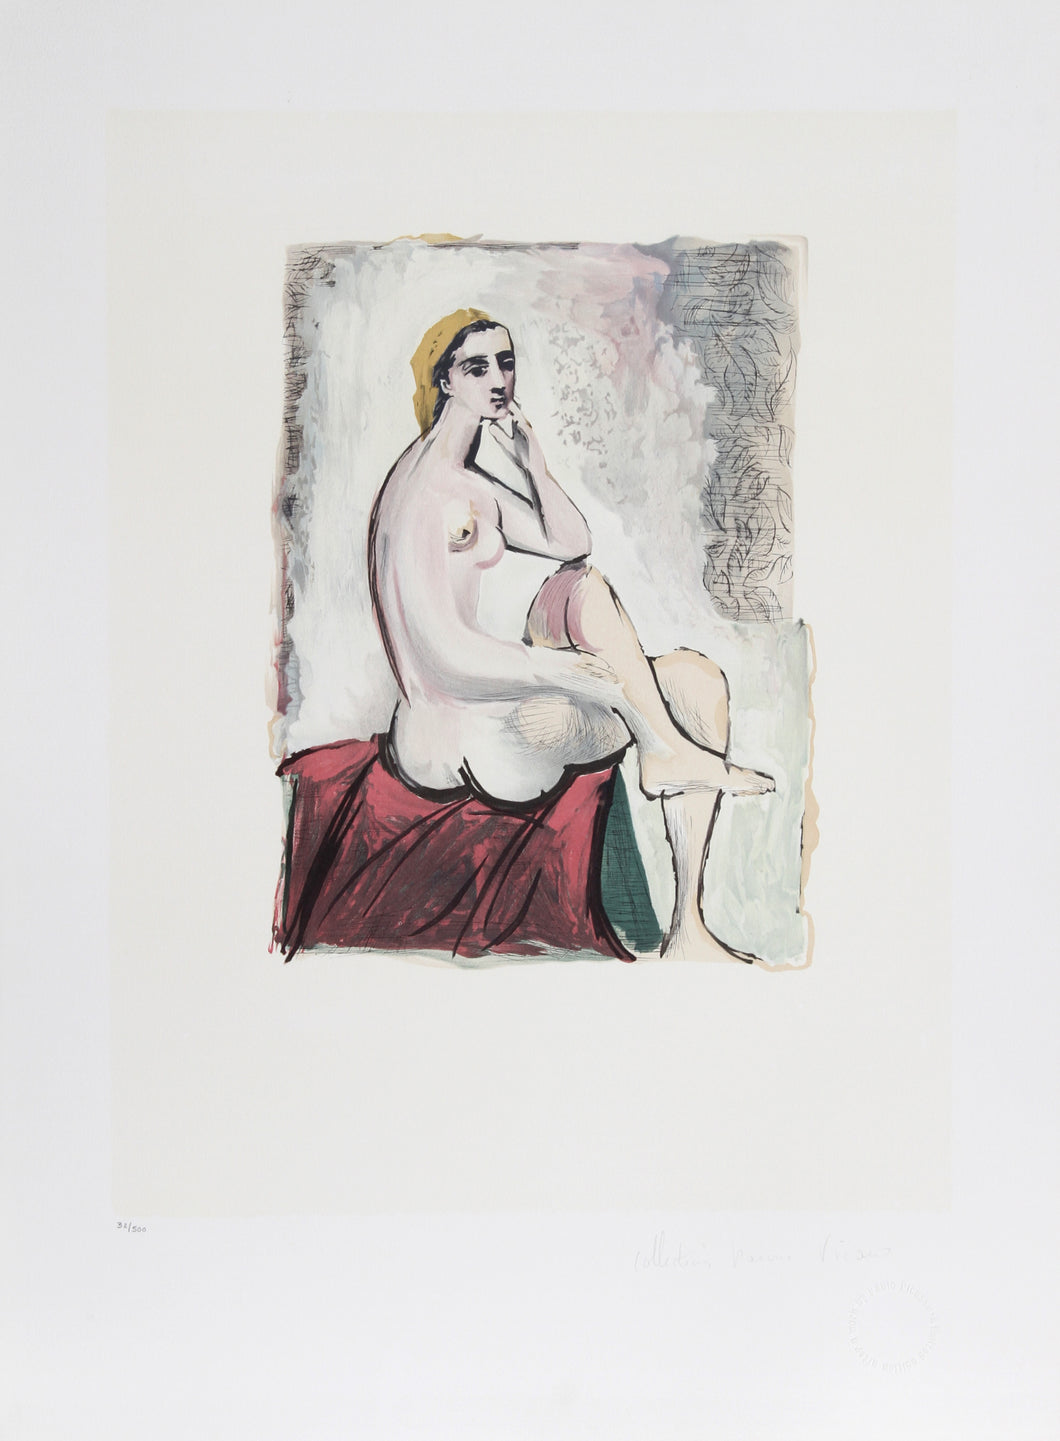 Pablo Picasso, Nu Assis, 32-3, Lithograph on Arches Paper